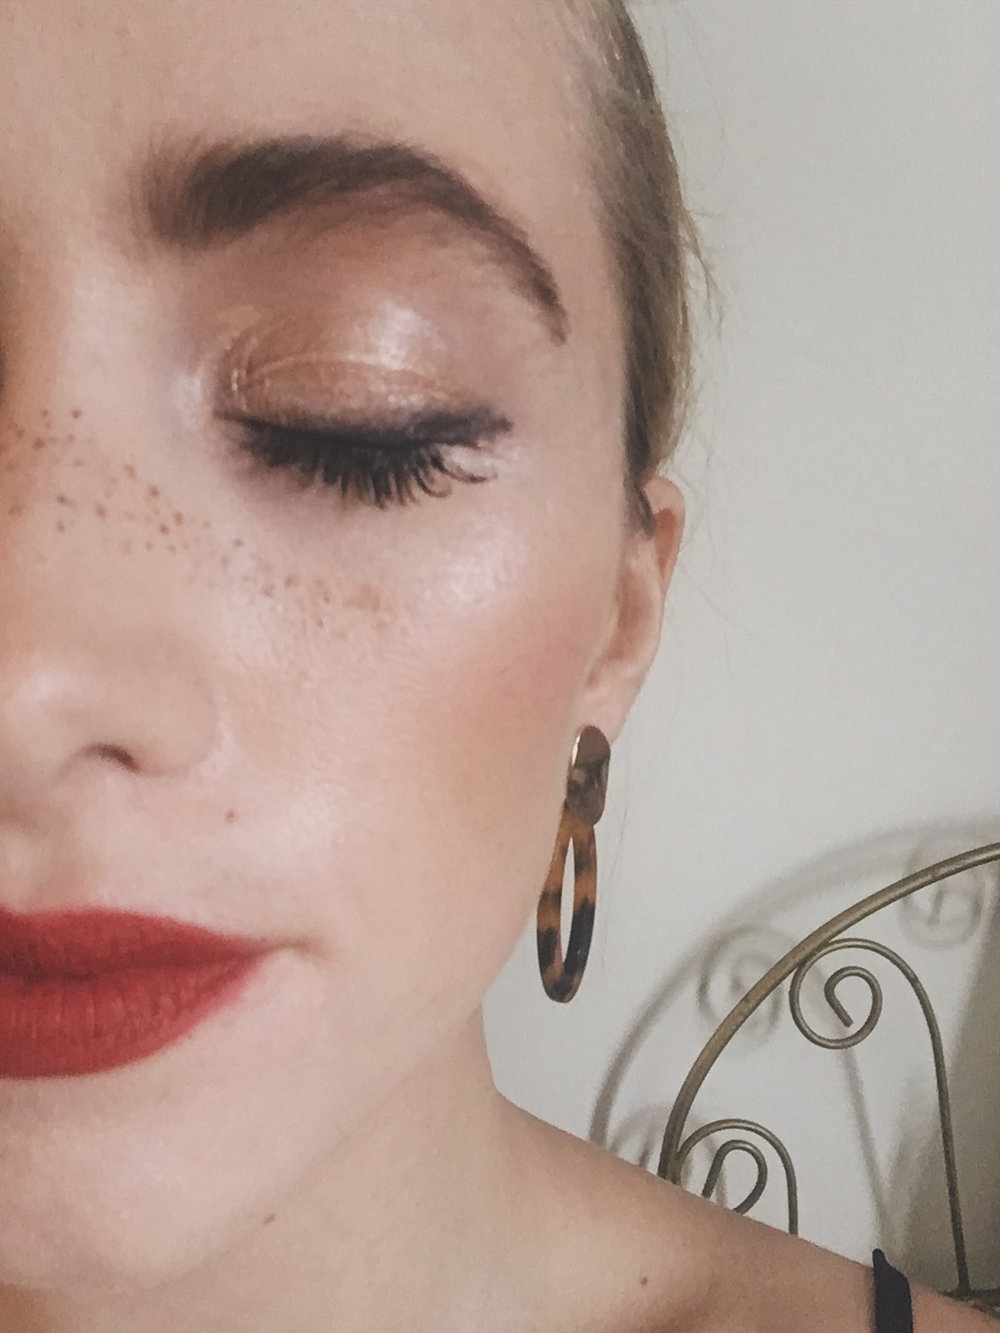 HOLIDAY MAKEUP - EASY AND PRETTY HOLIDAY MAKEUP FOR ANY FESTIVE OCCASION